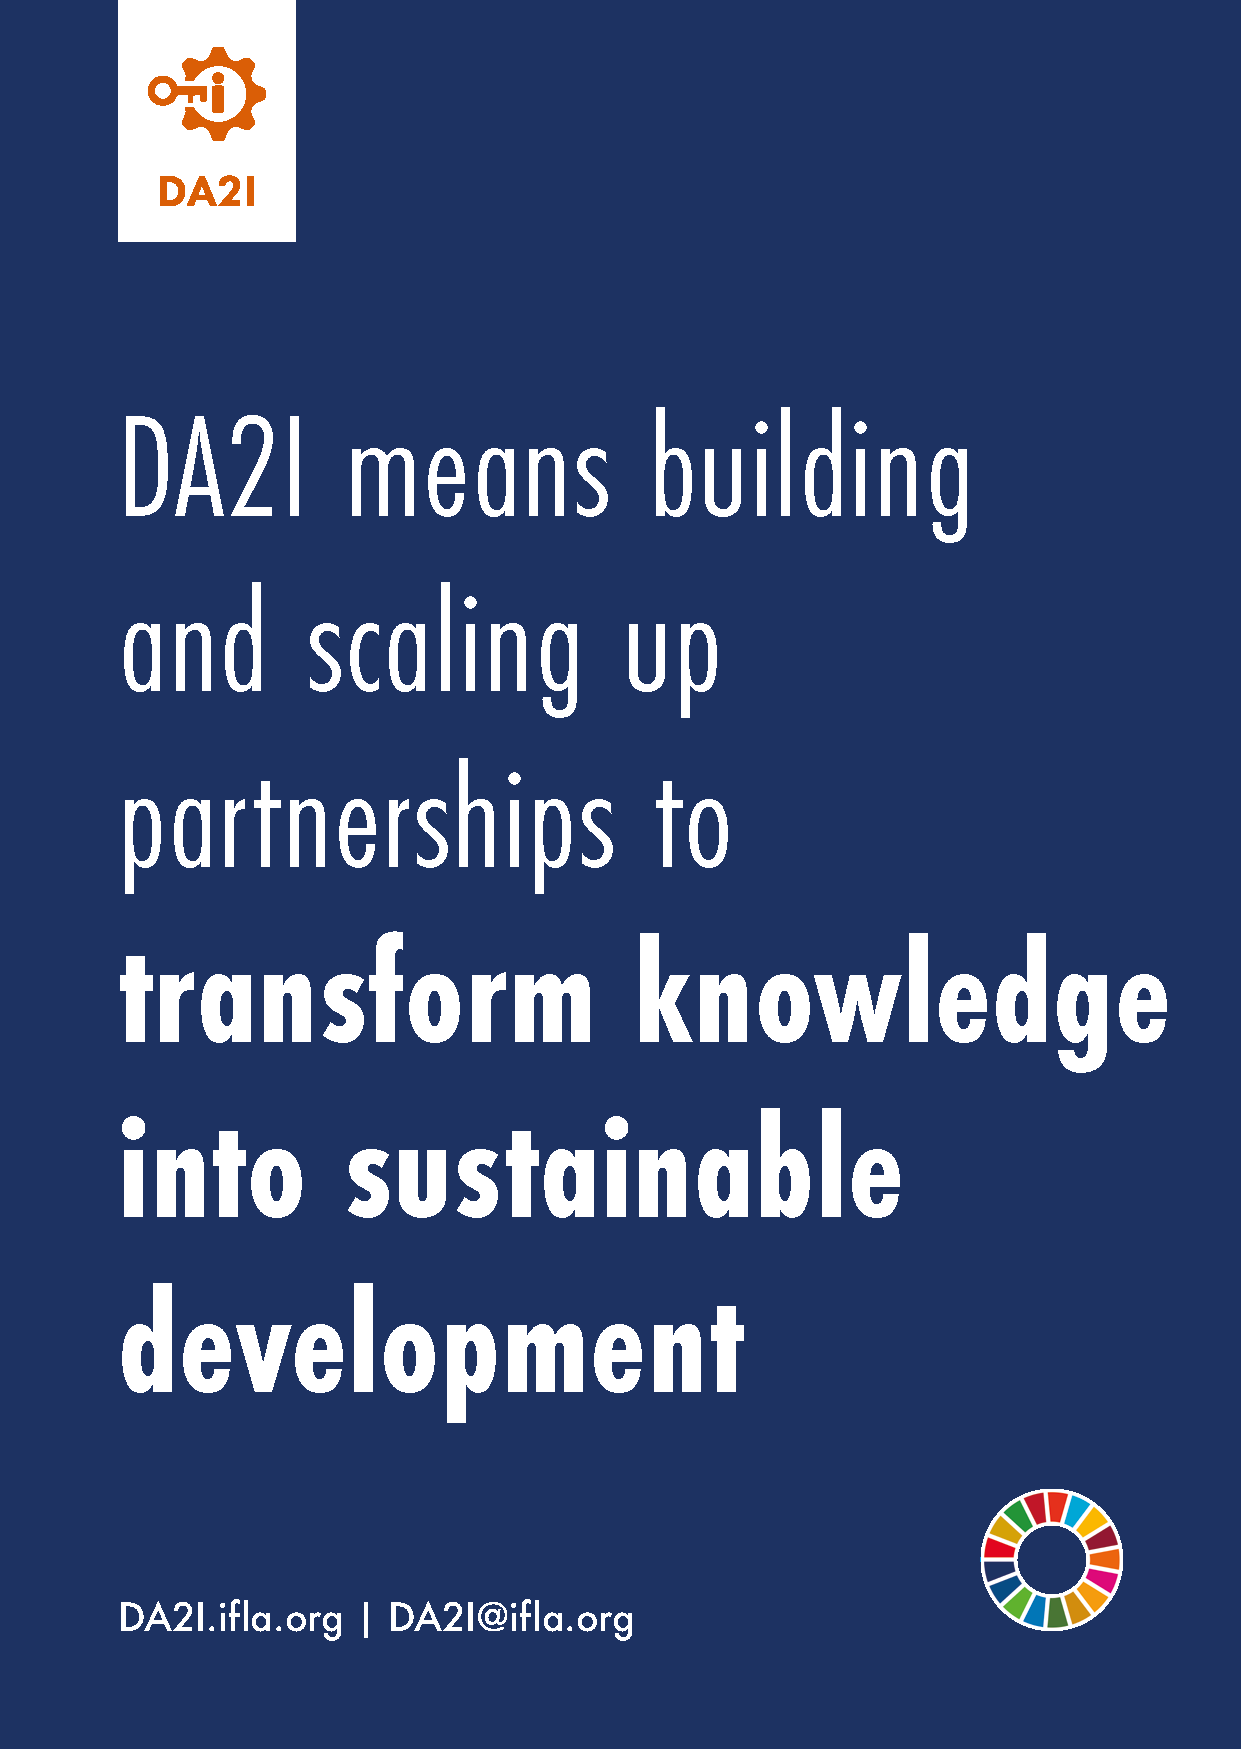 DA2I means building and scaling up partnerships to transform knowledge into sustainable development